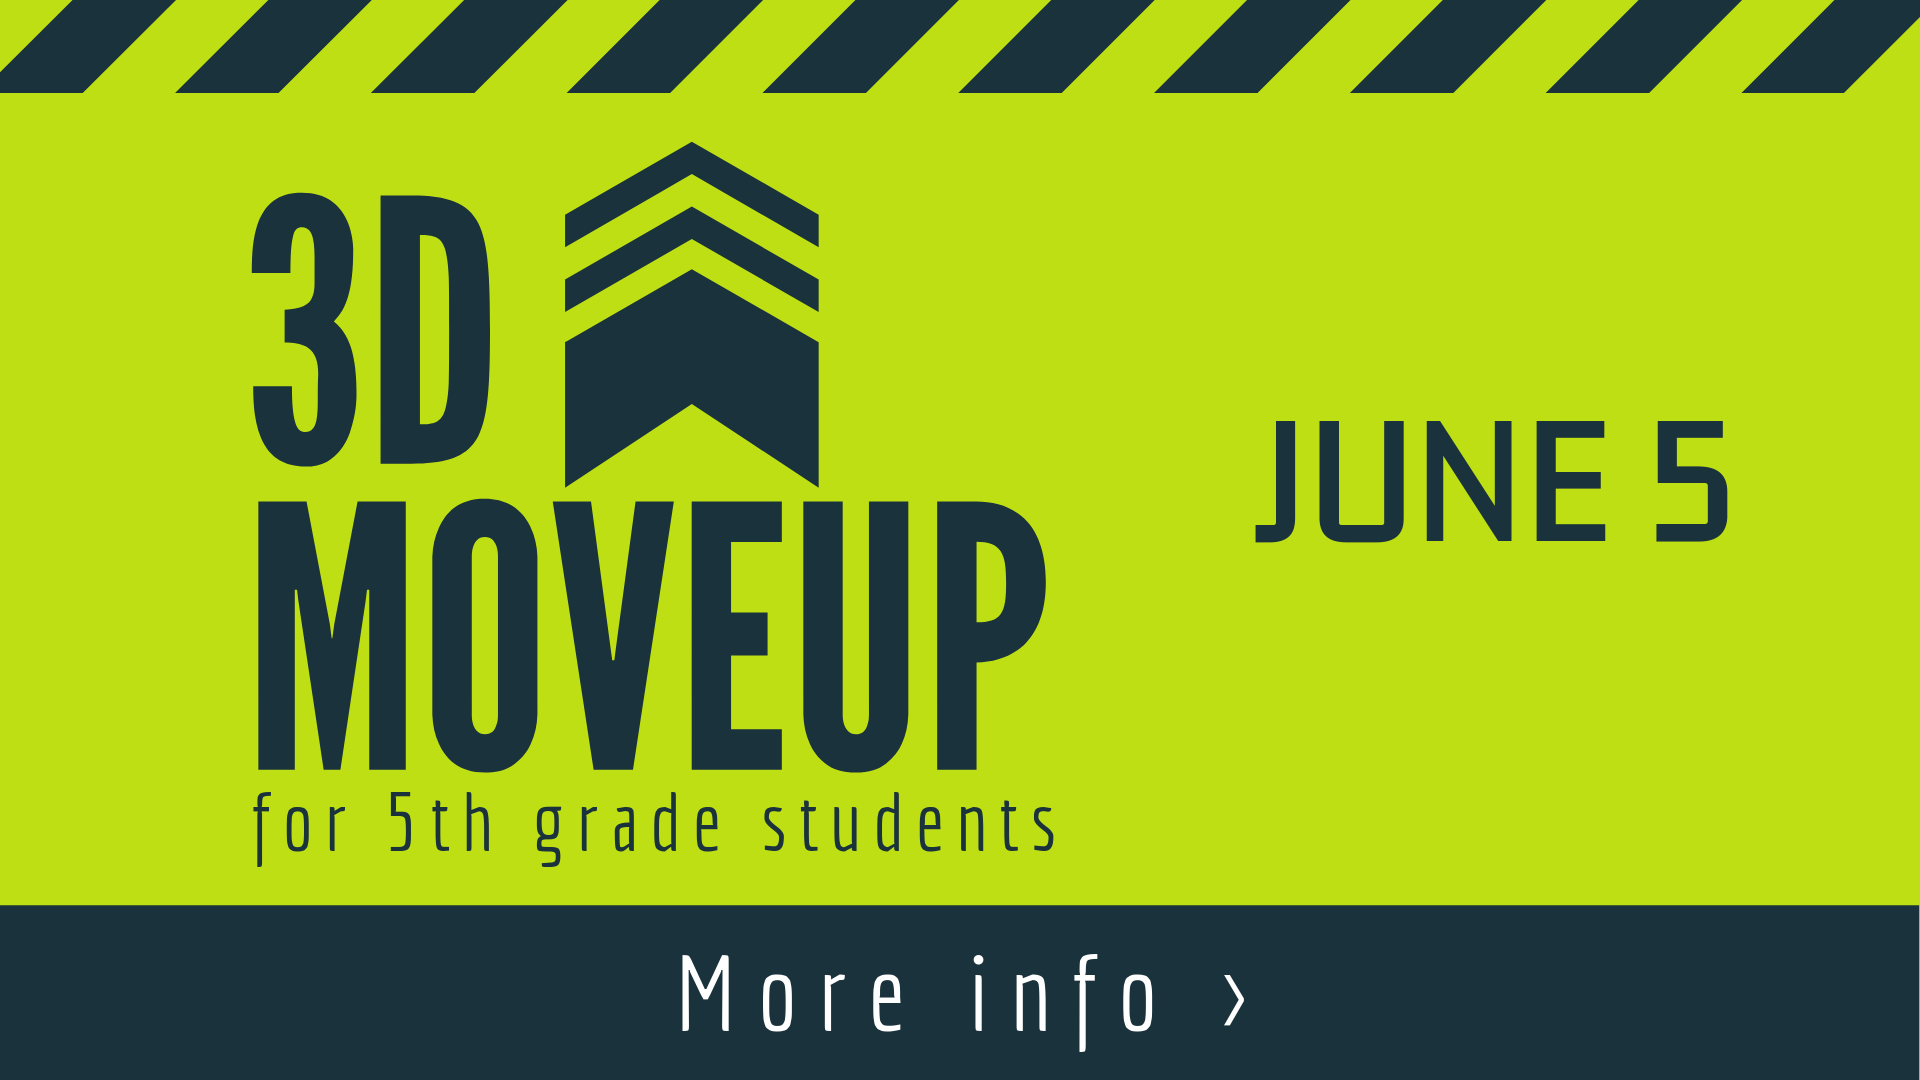 Student Ministries moveUP - June 5 will be moveUP for 5th grade students moving into 3D.More Info >